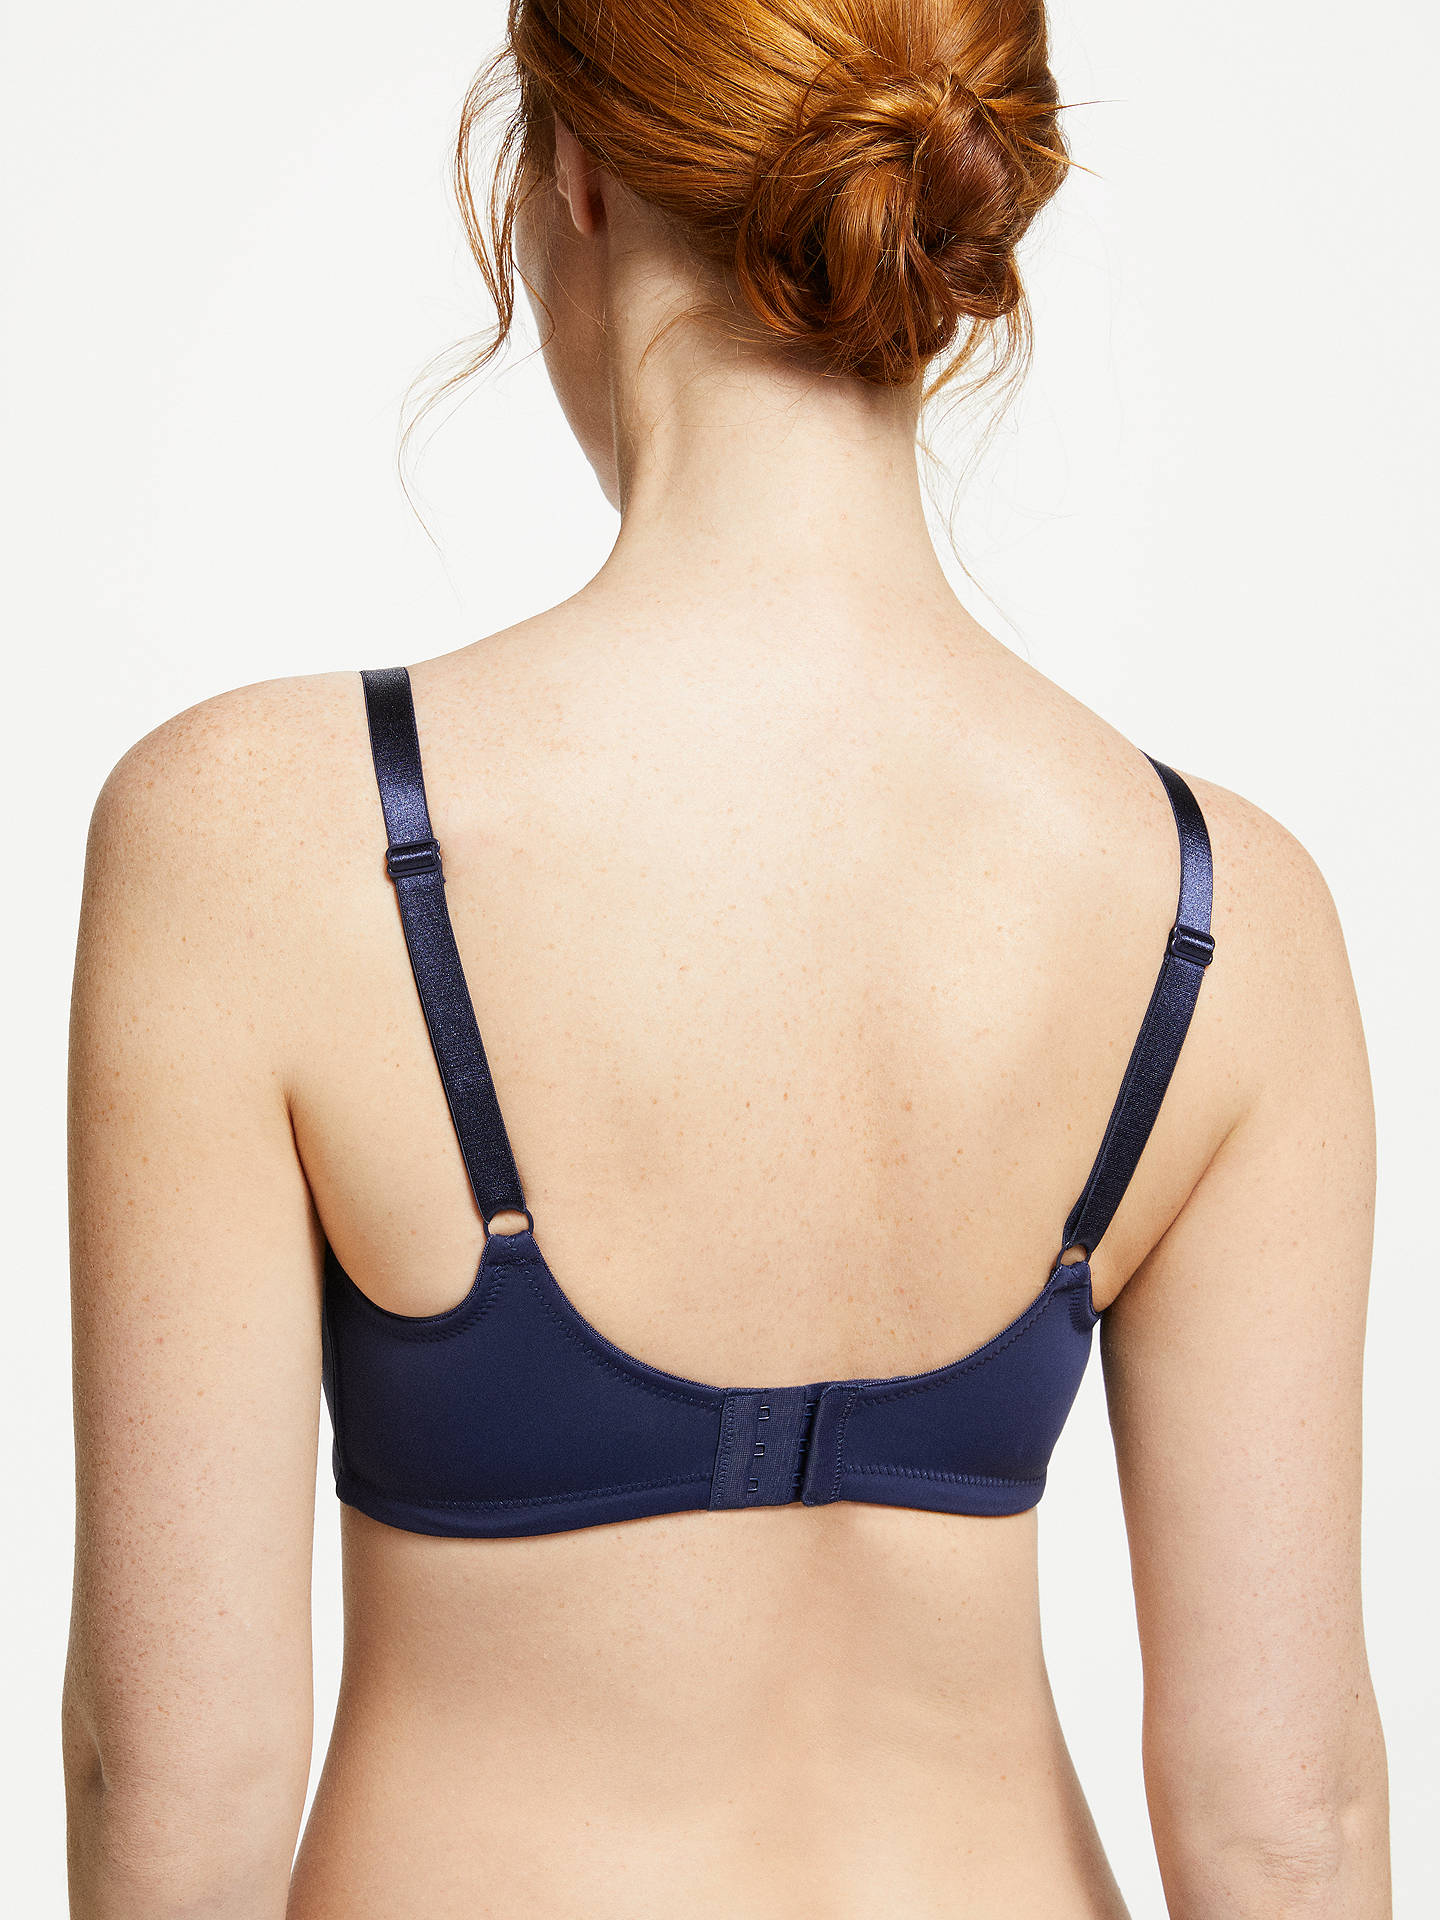 BuyJohn Lewis & Partners Maternity Bra, Pack of 2, Ivory/Navy, 32C Online at johnlewis.com